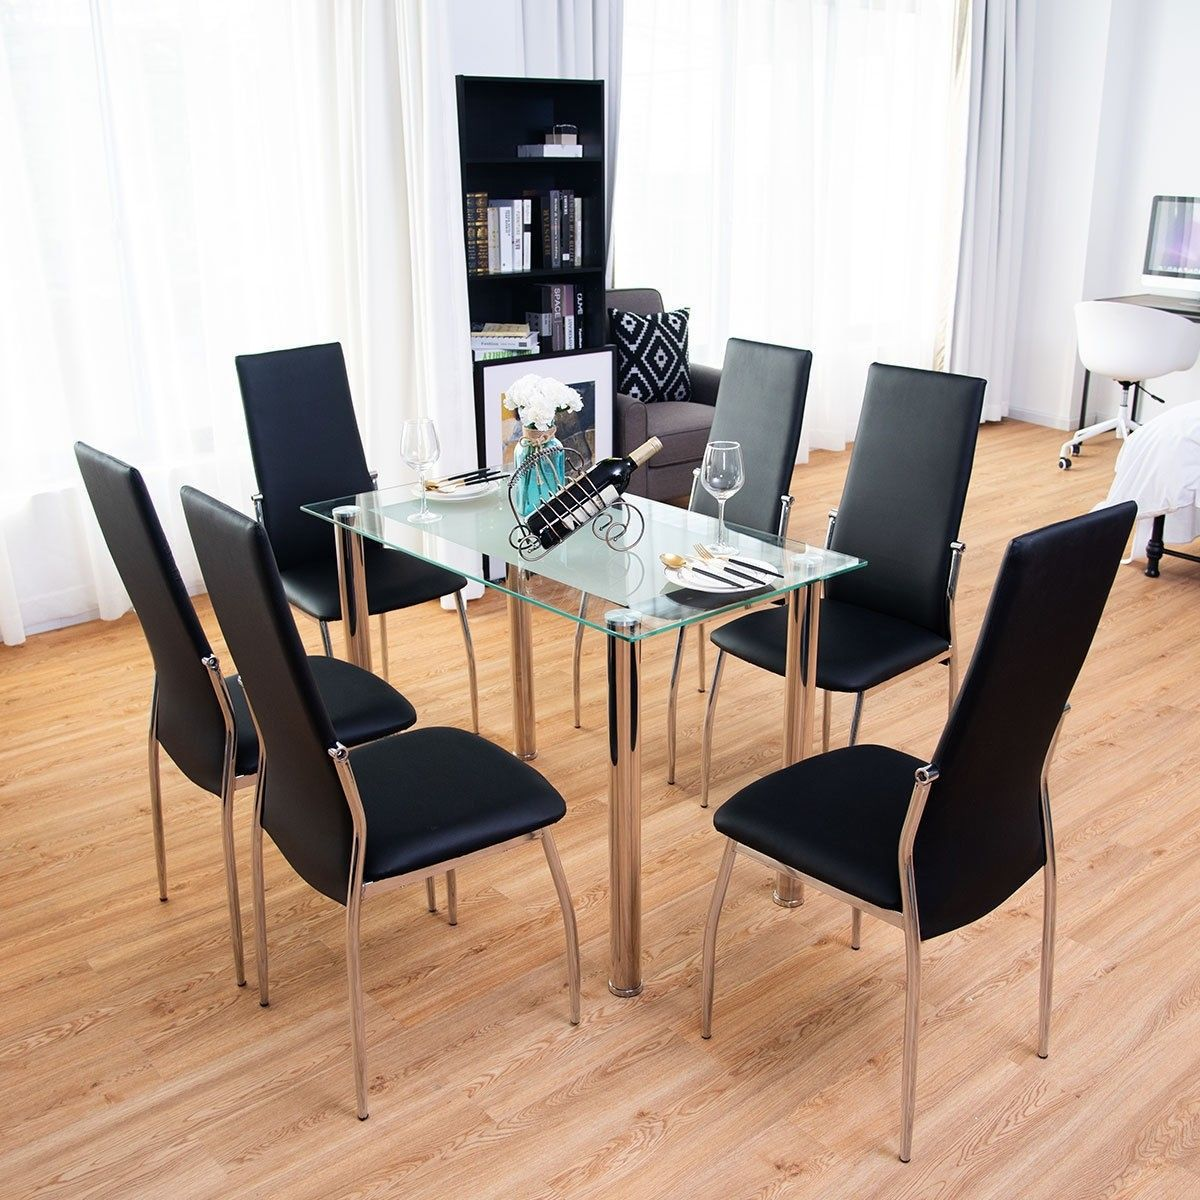 7 Pcs Dining Set Tempered Glass Top Table 6 Chairs Modern